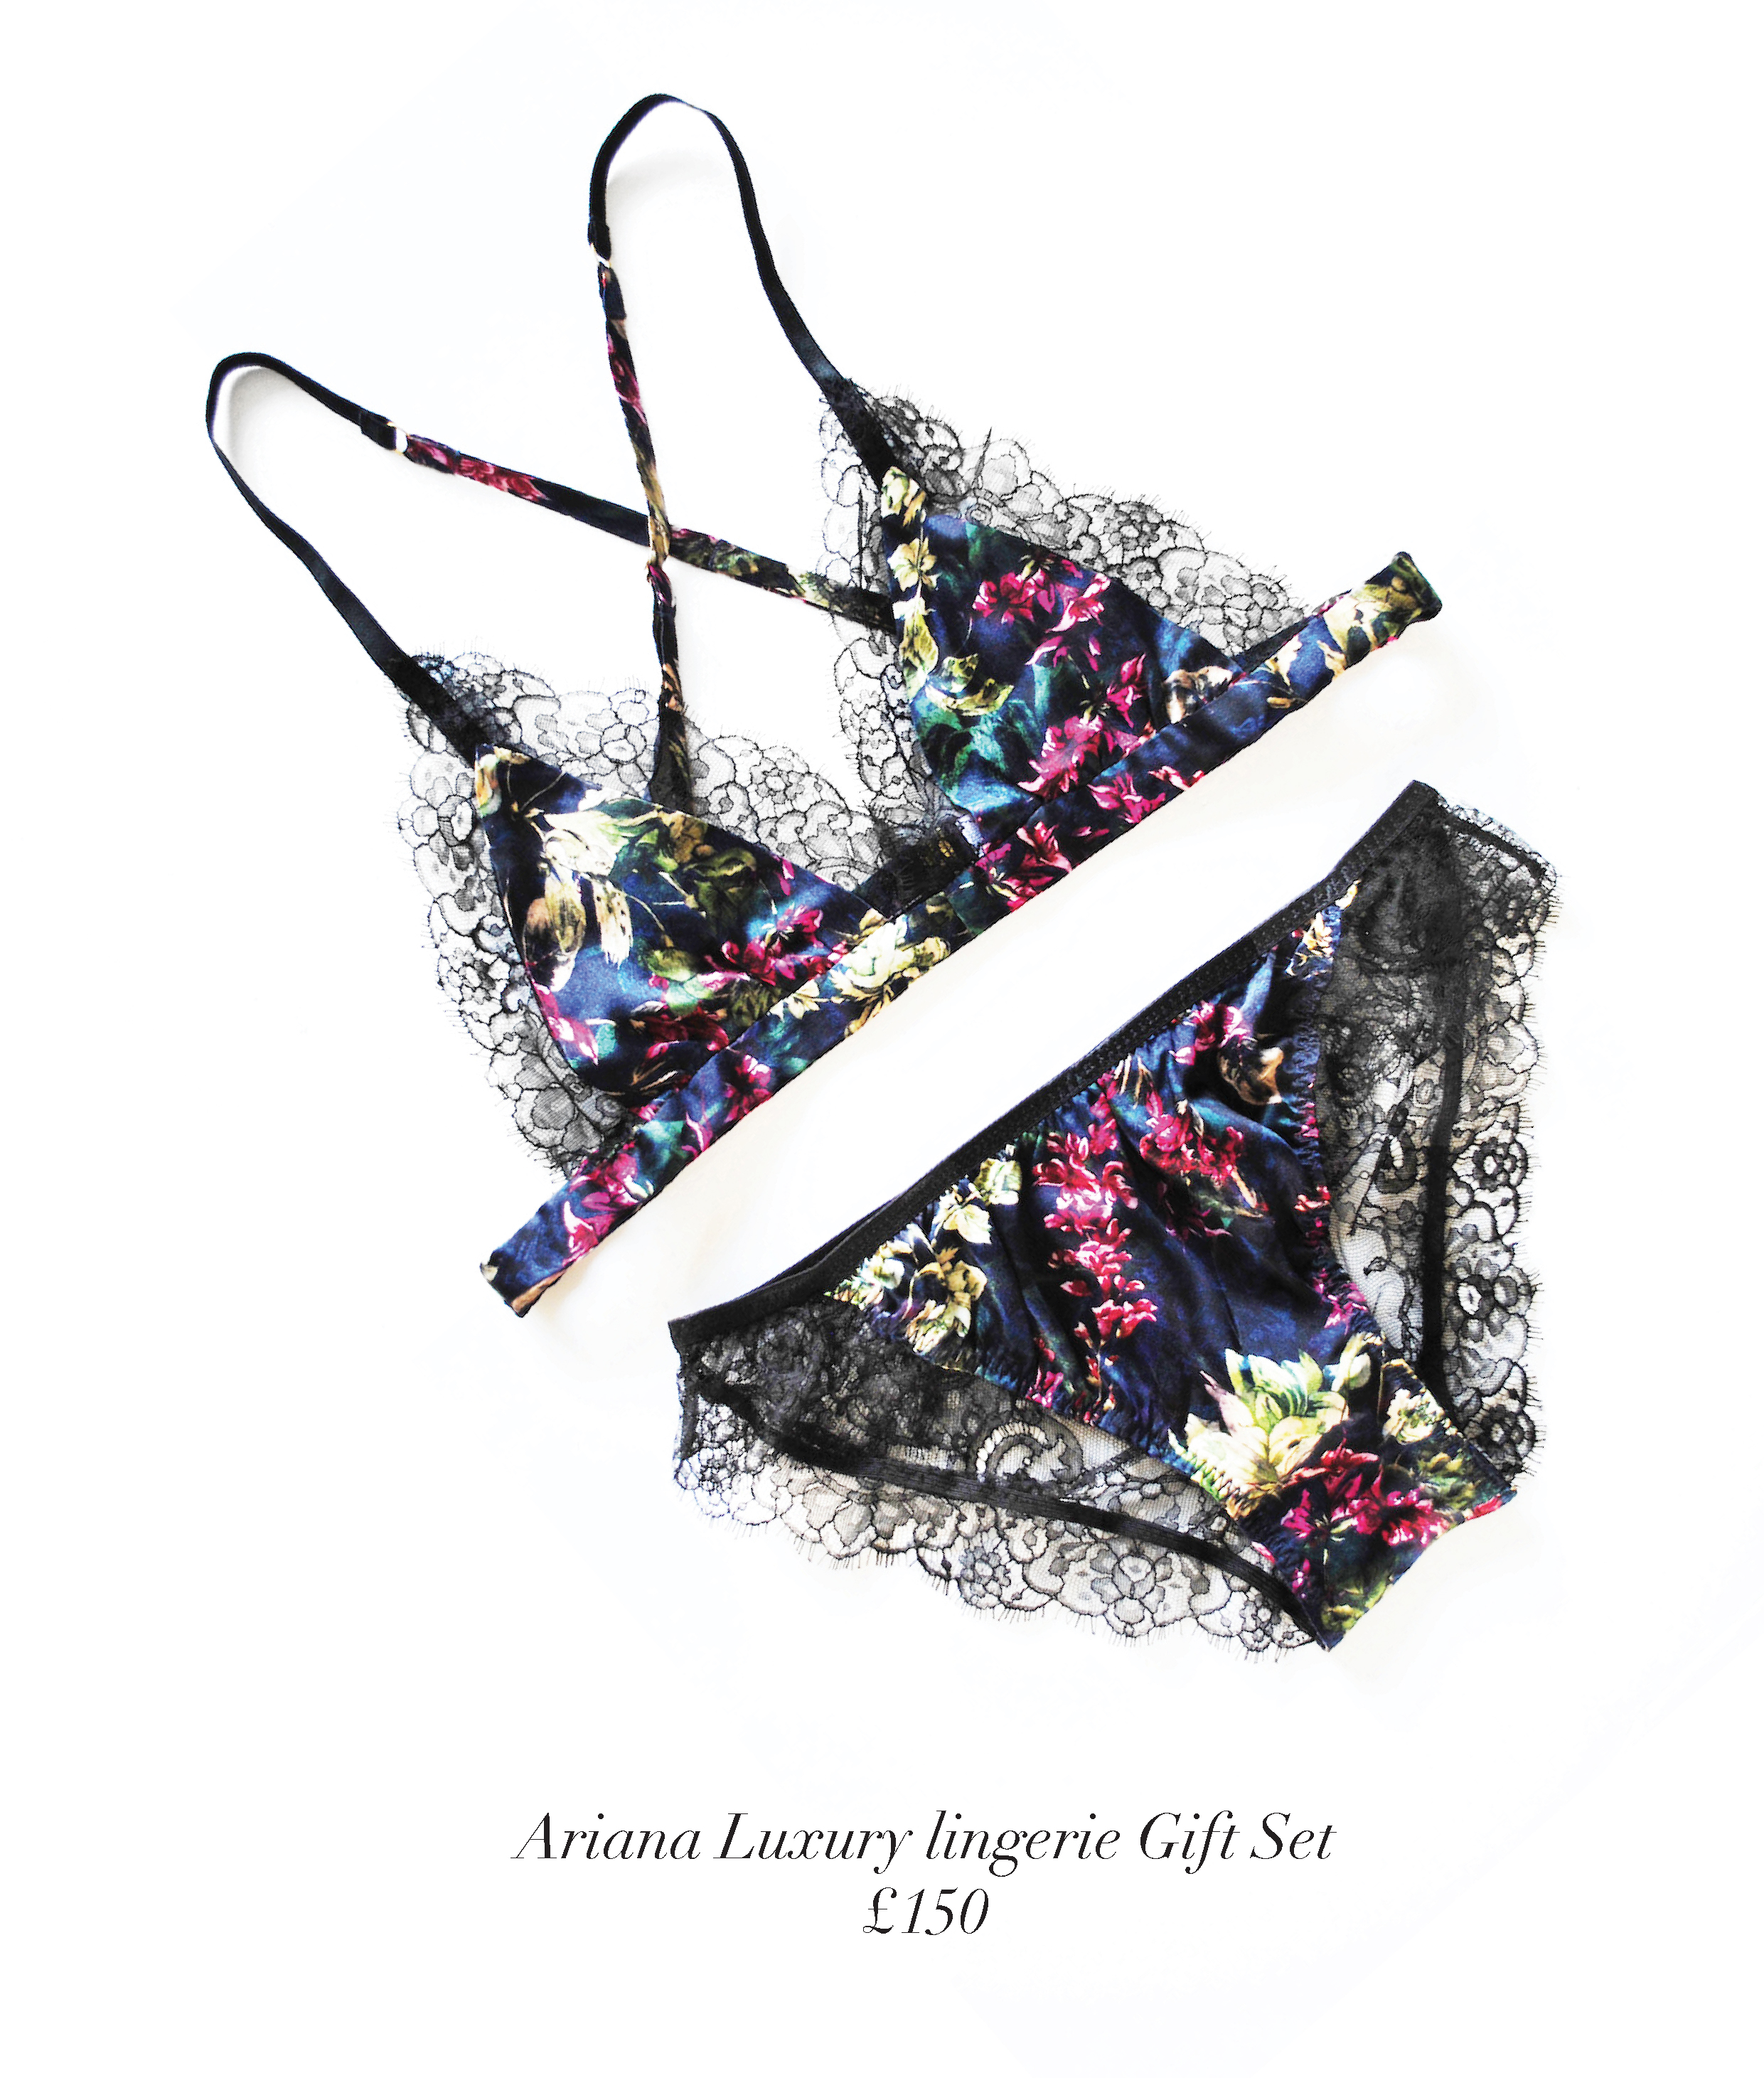 ariana luxury floral christmas lingerie gift set